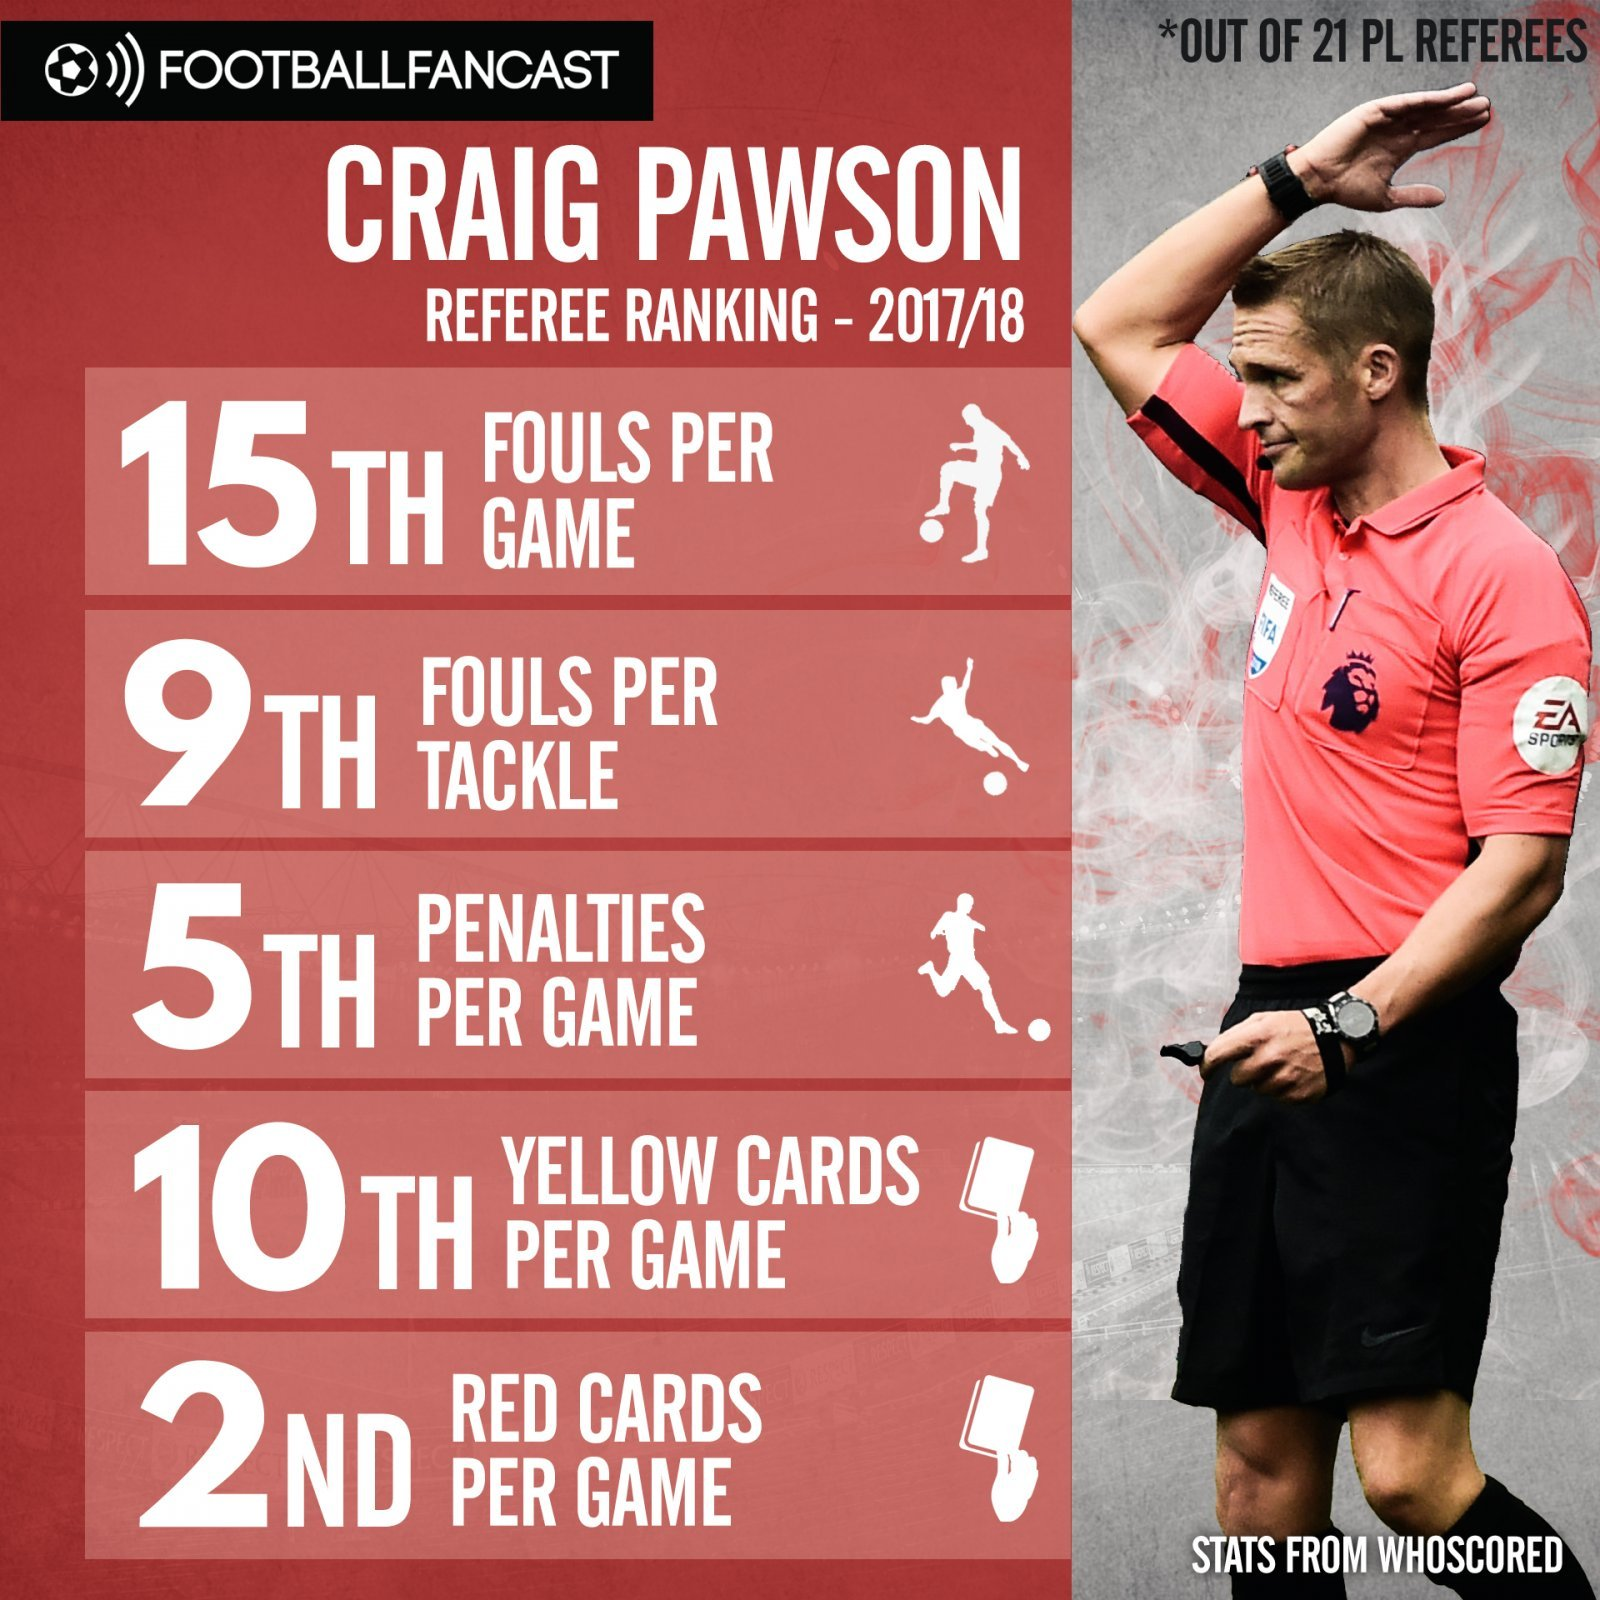 Craig Pawson's stats from the 2017-18 season